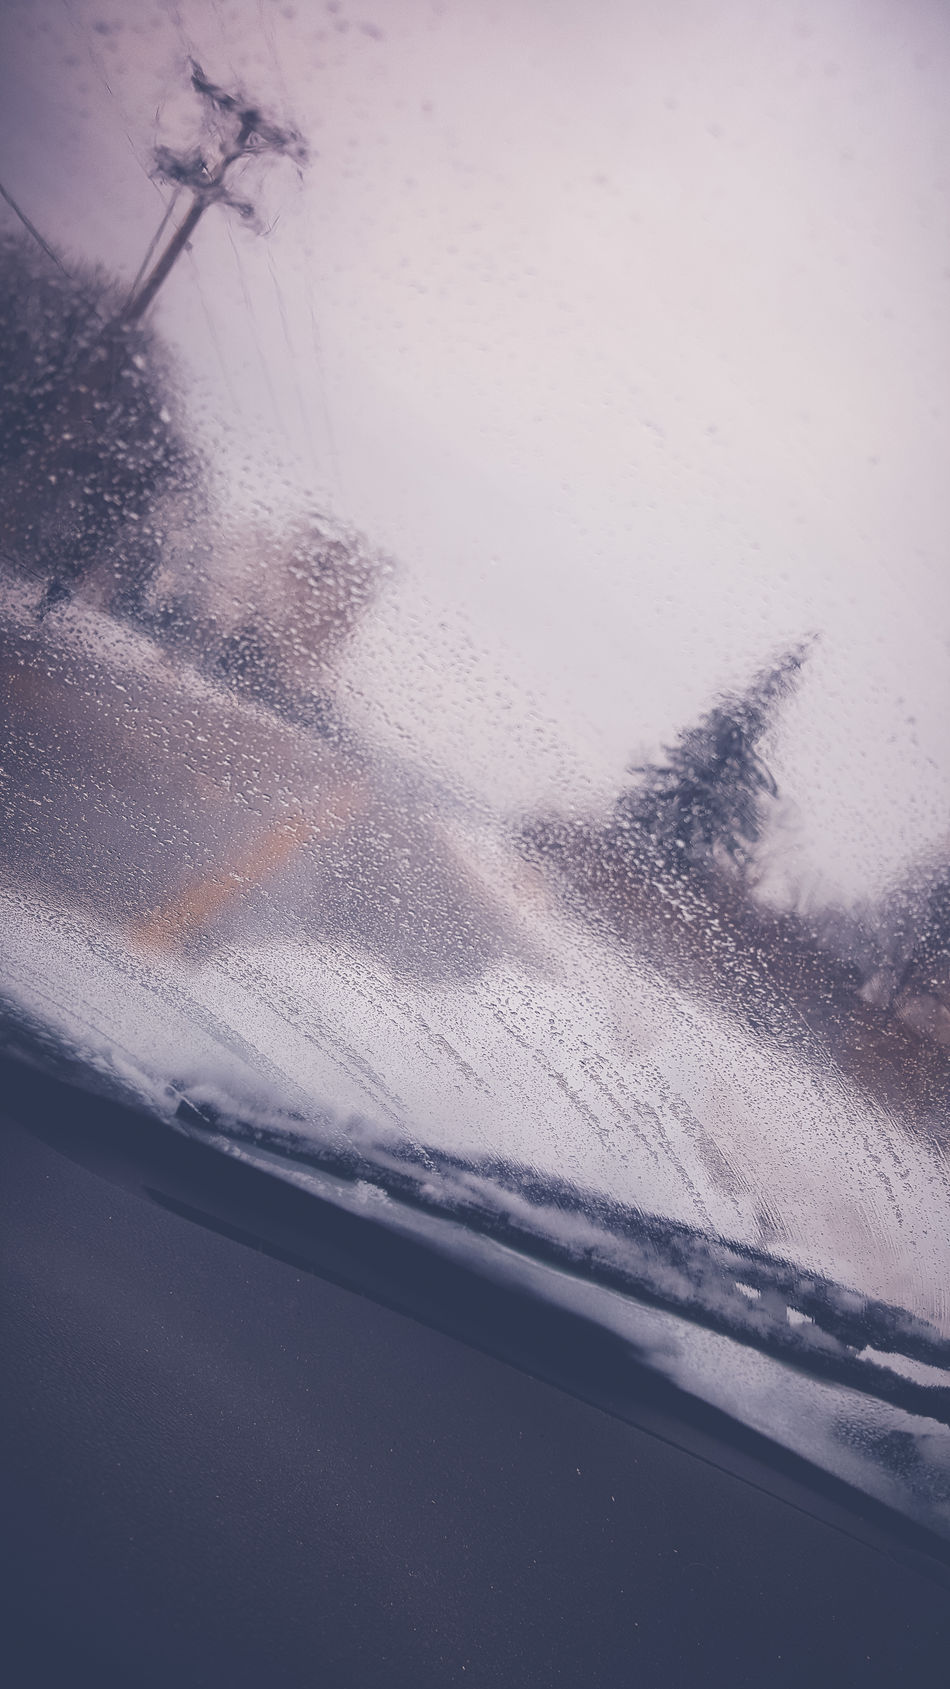 Dashcam Driving Impaired Impaired Driving Sight Impaired Vision Impairment On The Move On The Road Snow Day Snowy Telephone Pole Trees Windshield Windshield Wipers Winter Winter Wonderland